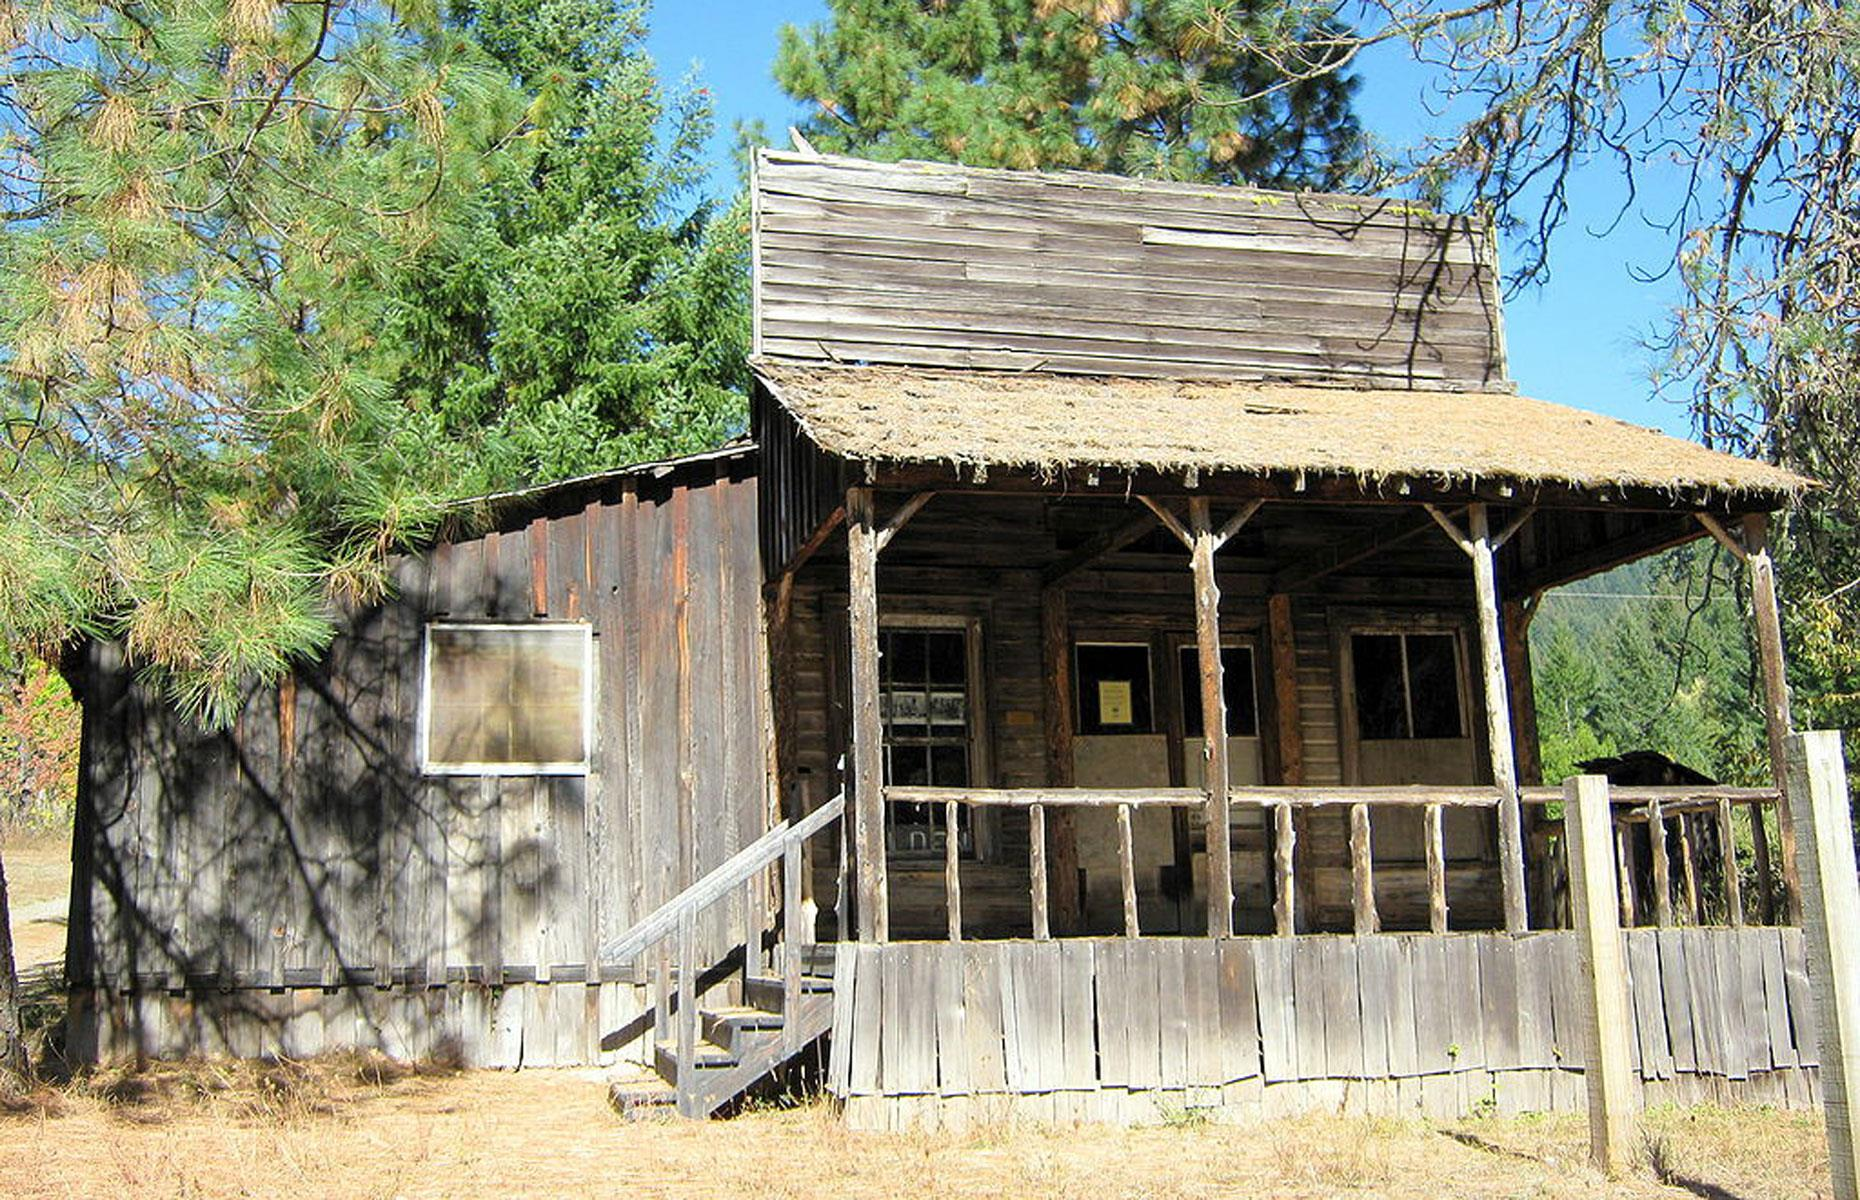 Slide 74 of 101: The northwestern state of Oregon has hundreds of ghost towns, and the small settlement of Golden sprang up in the 1840s. By the 1890s, it had a population in the hundreds and a number of houses and public buildings, including a general store.